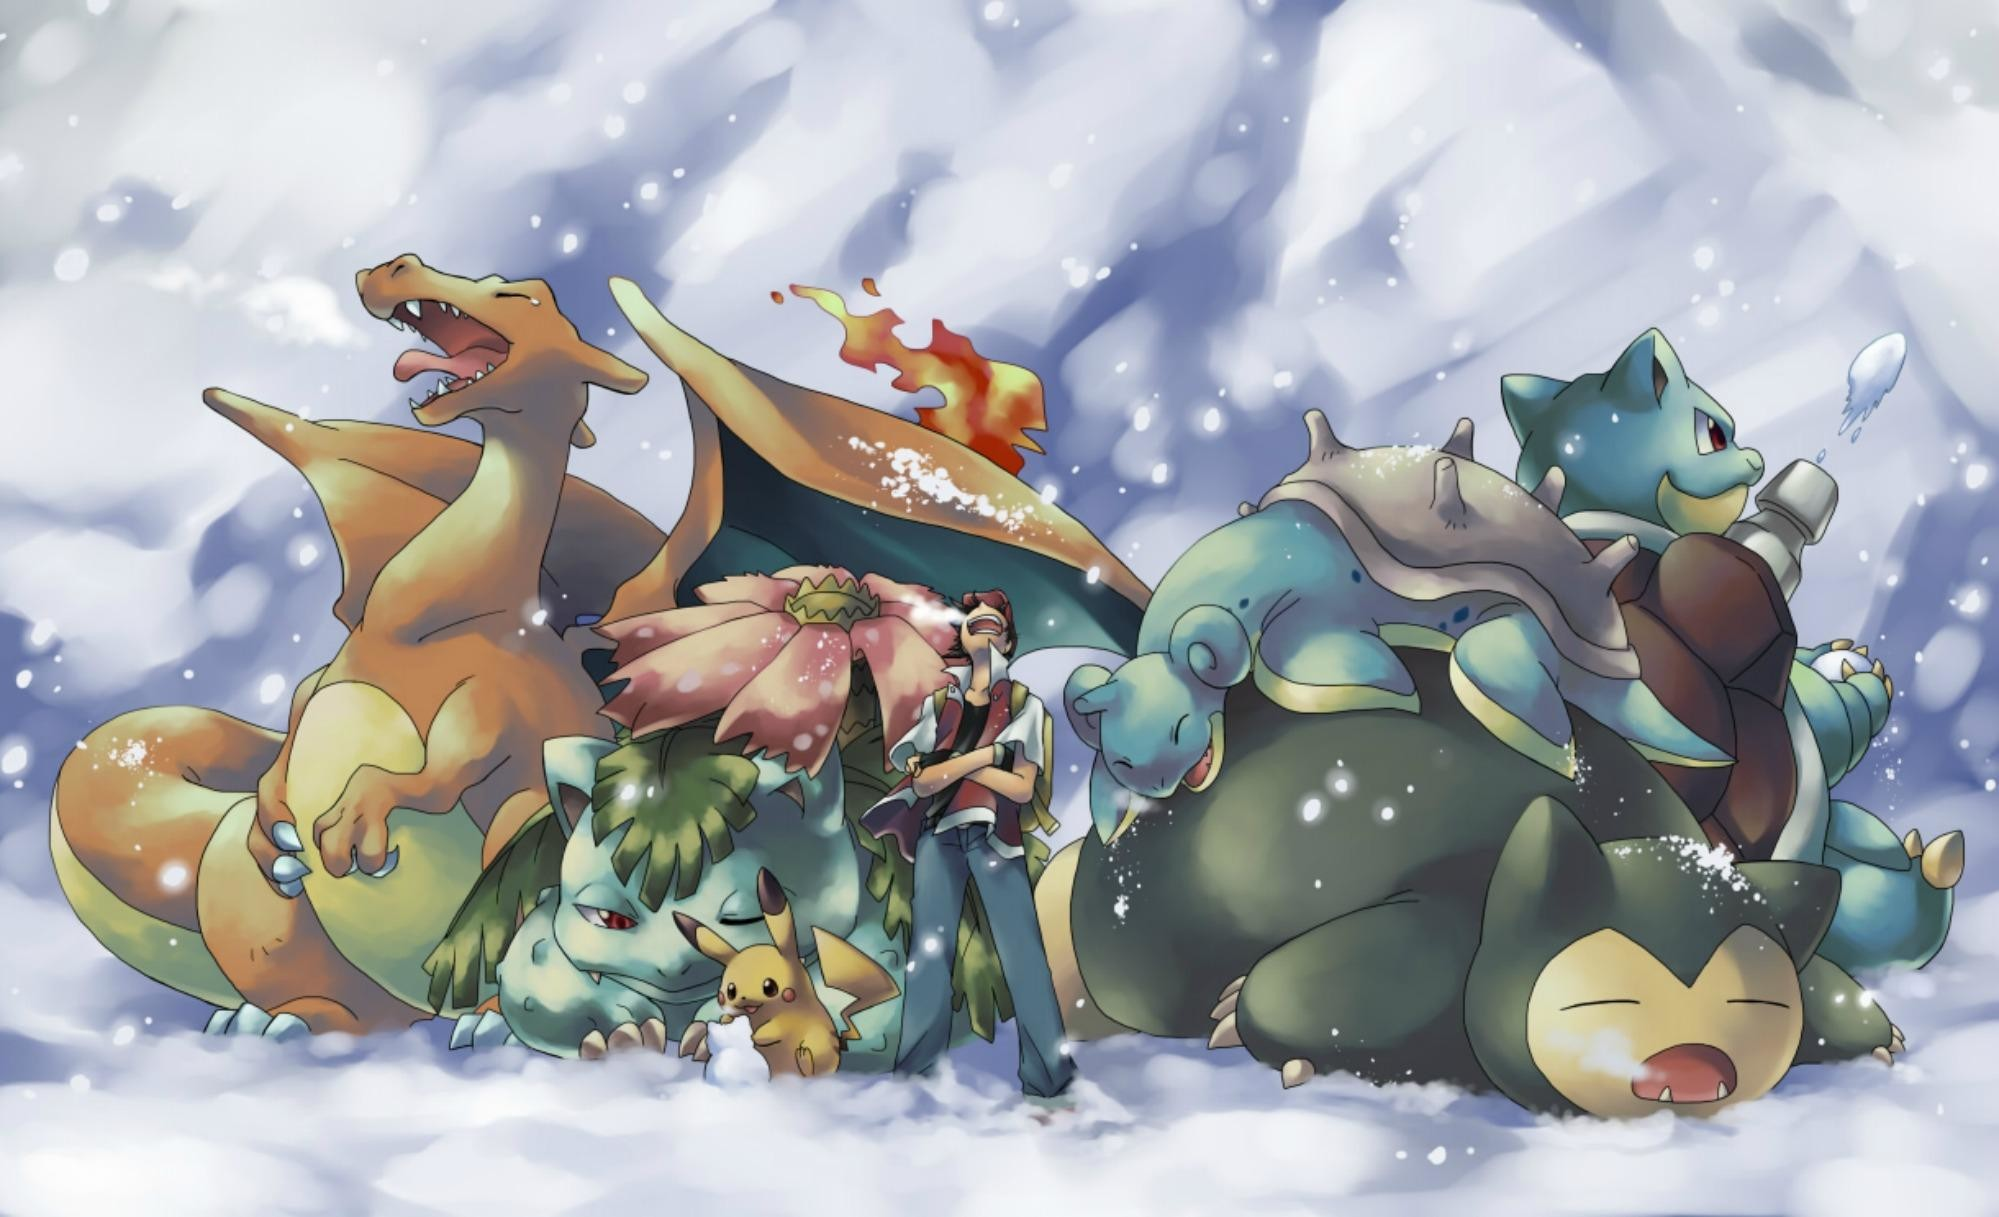 pokemon starters wallpaper full hd with high resolution wallpaper on anime  category similar with all 3d